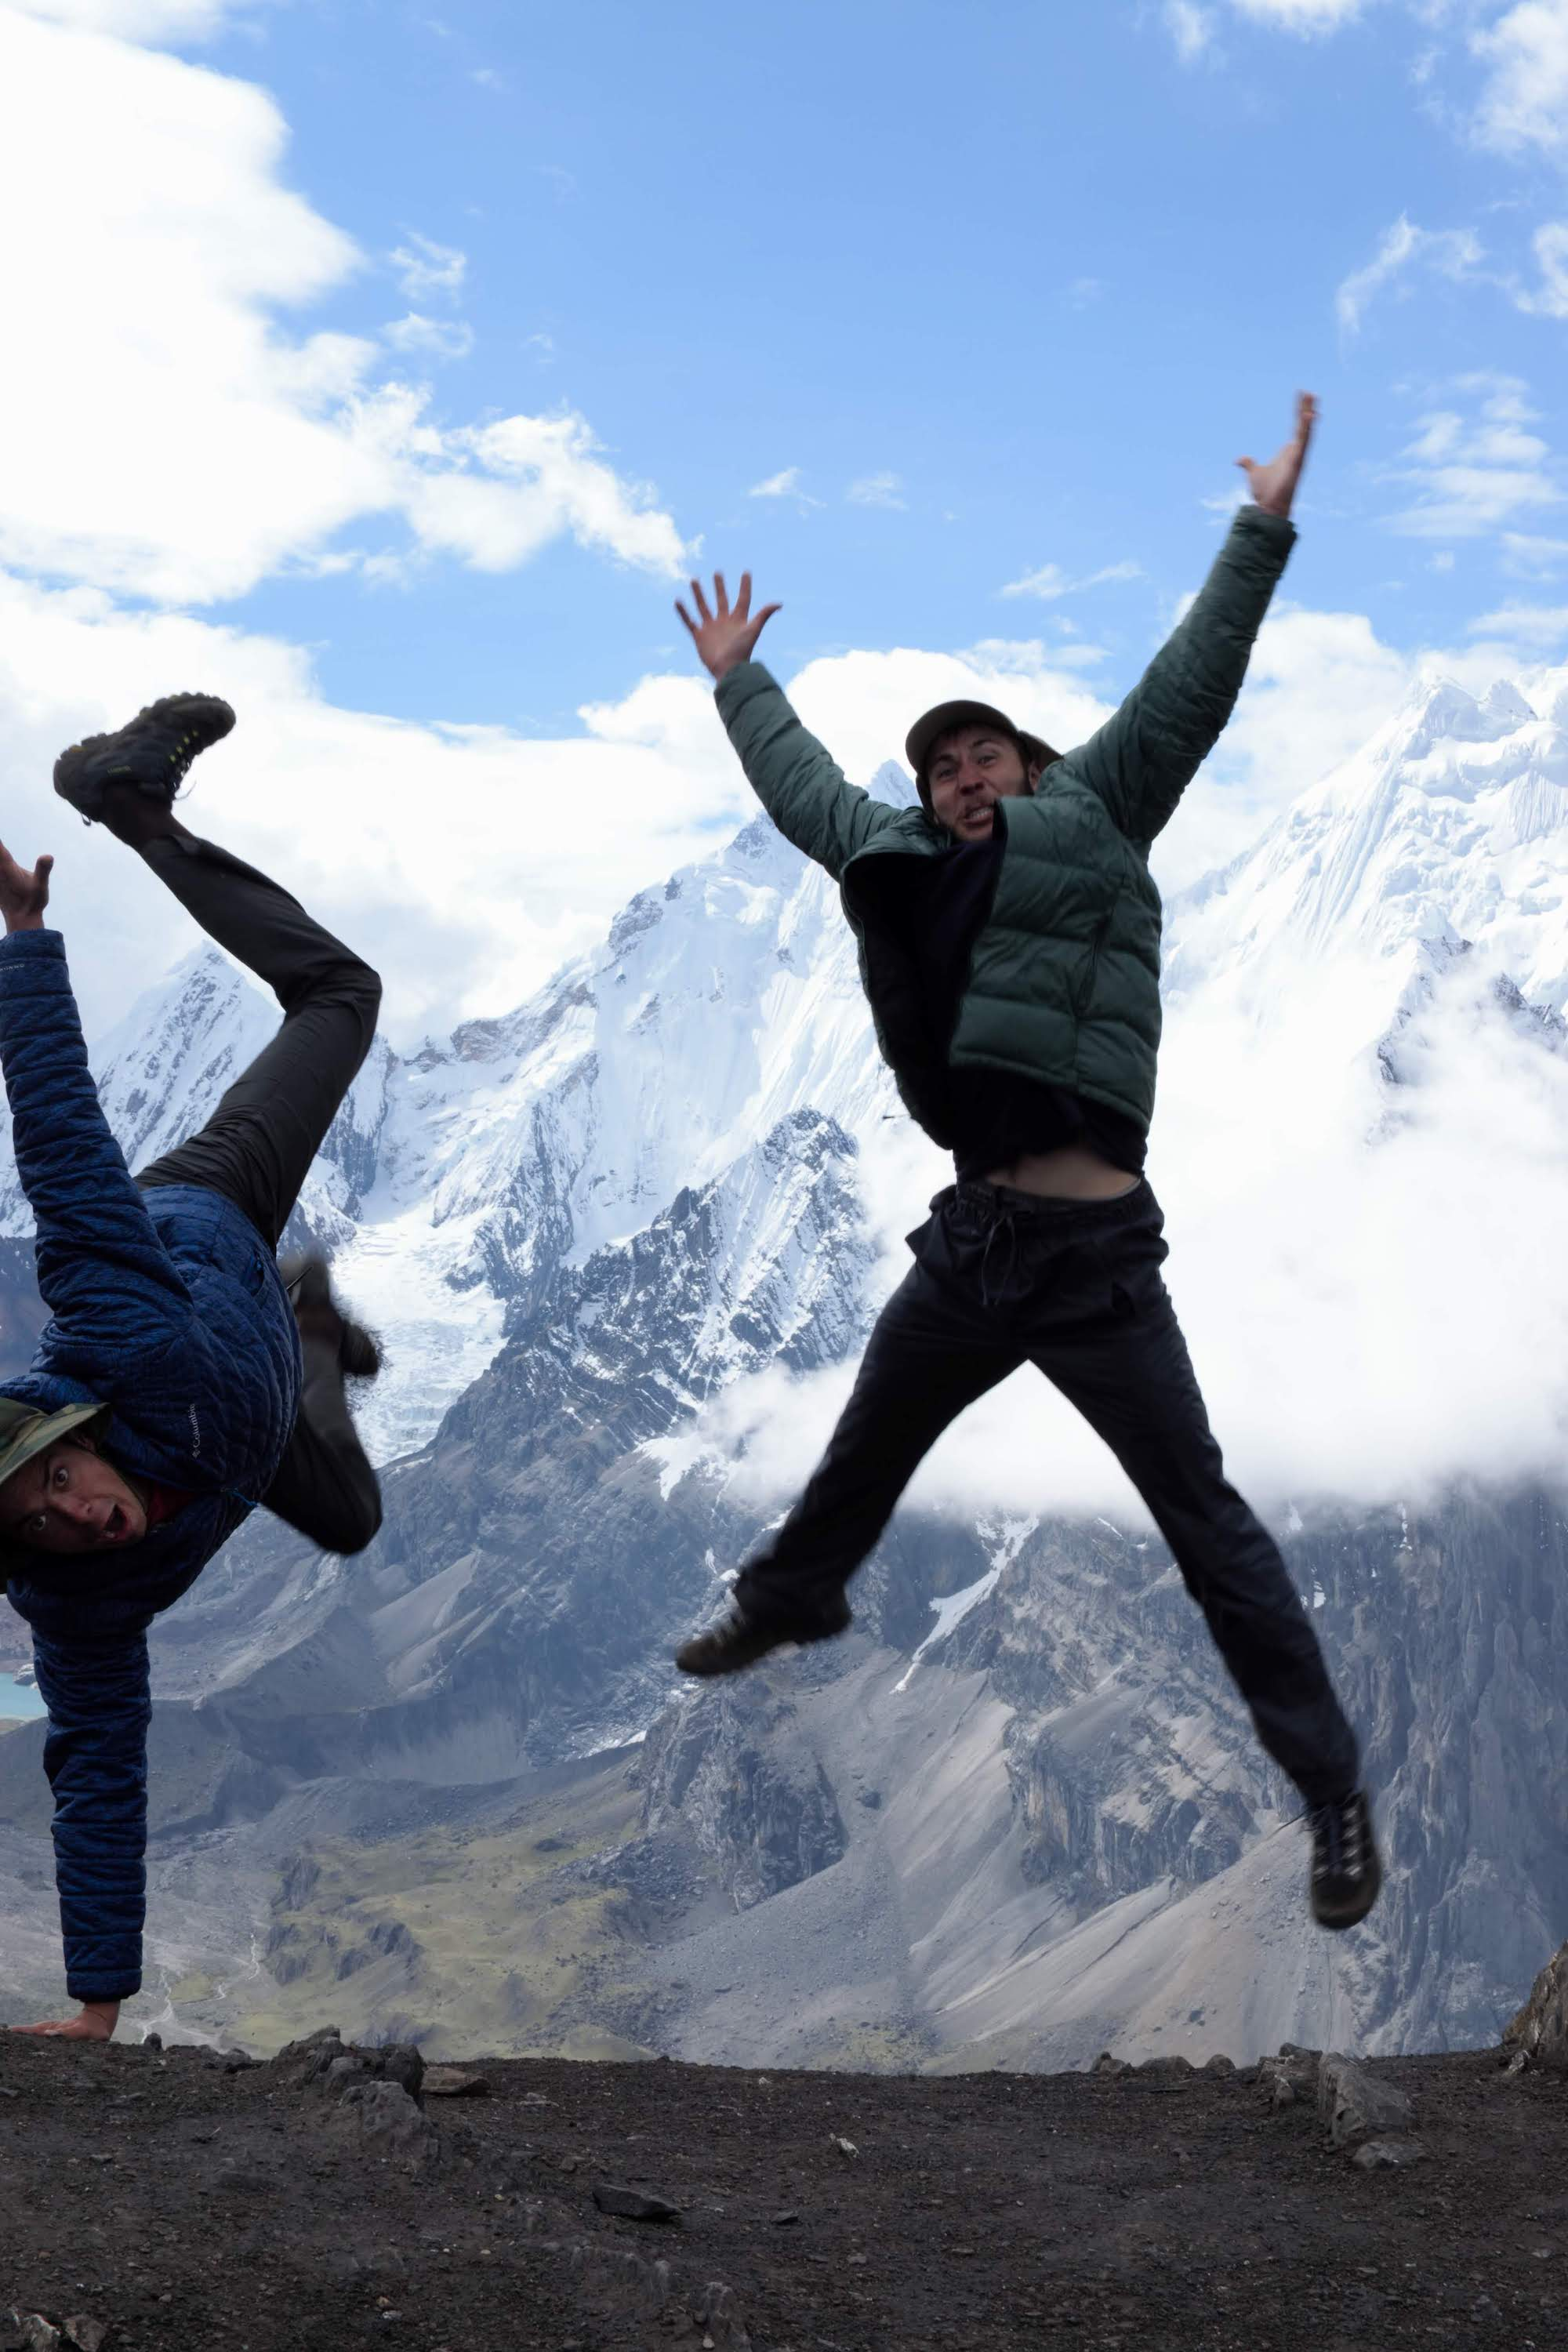 Jack and Max jumping for a photo with a mountain in the background